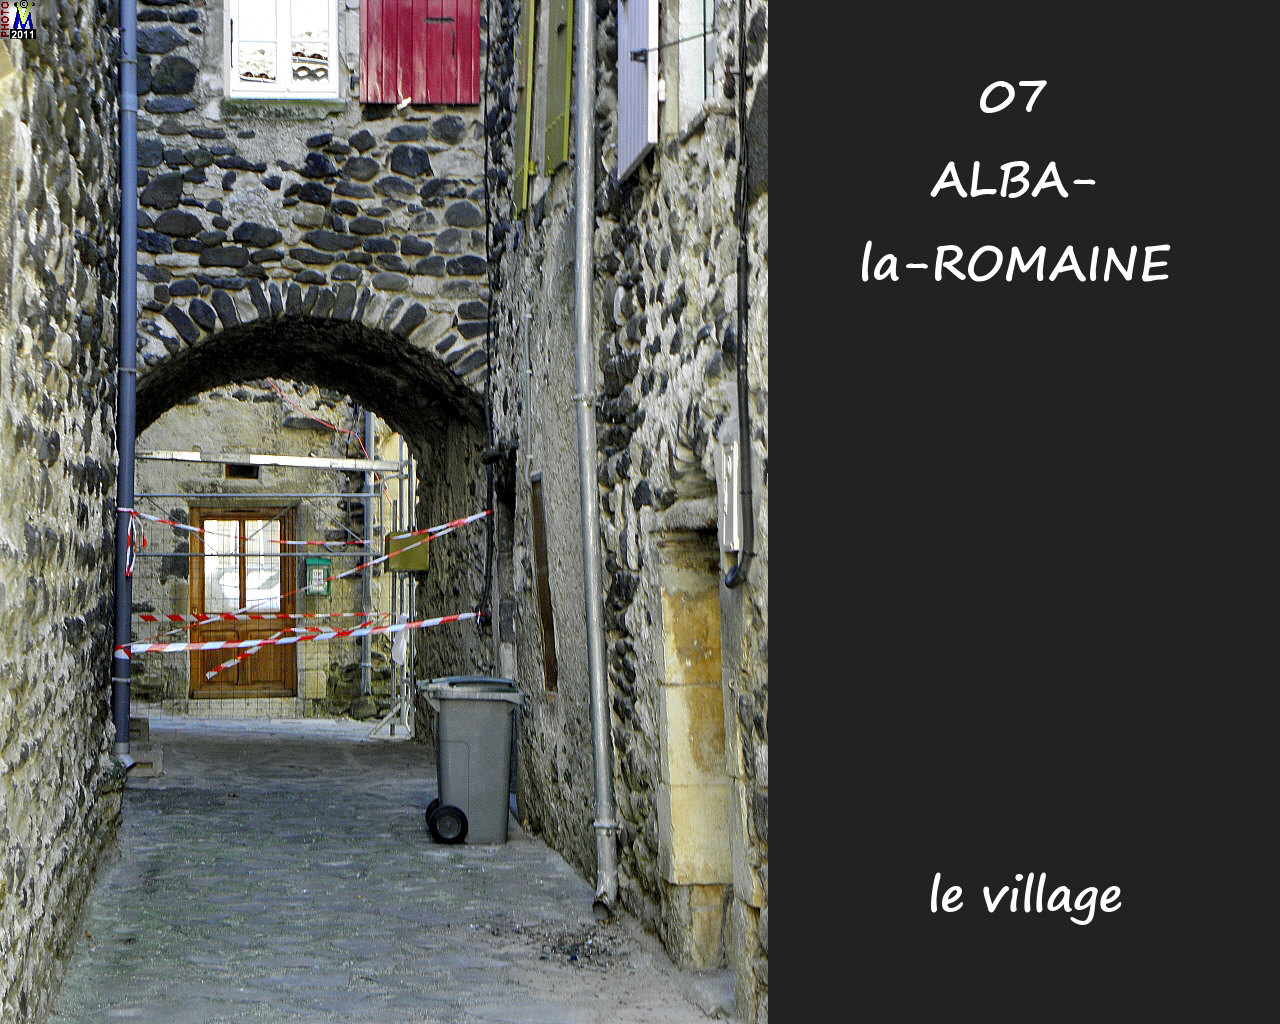 07ALBA-ROMAINE_village_144.jpg